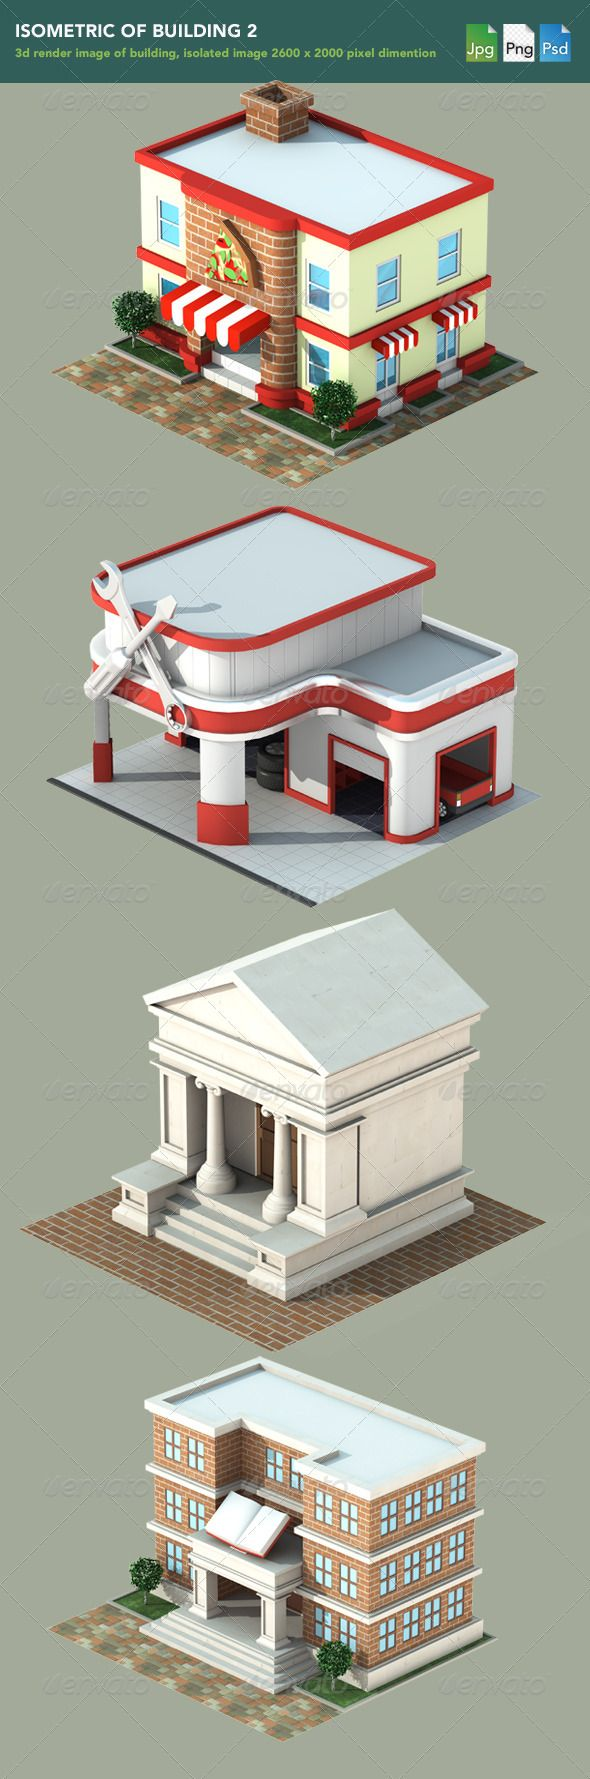 GraphicRiver Isometric 3D Render of Building 2 1177801